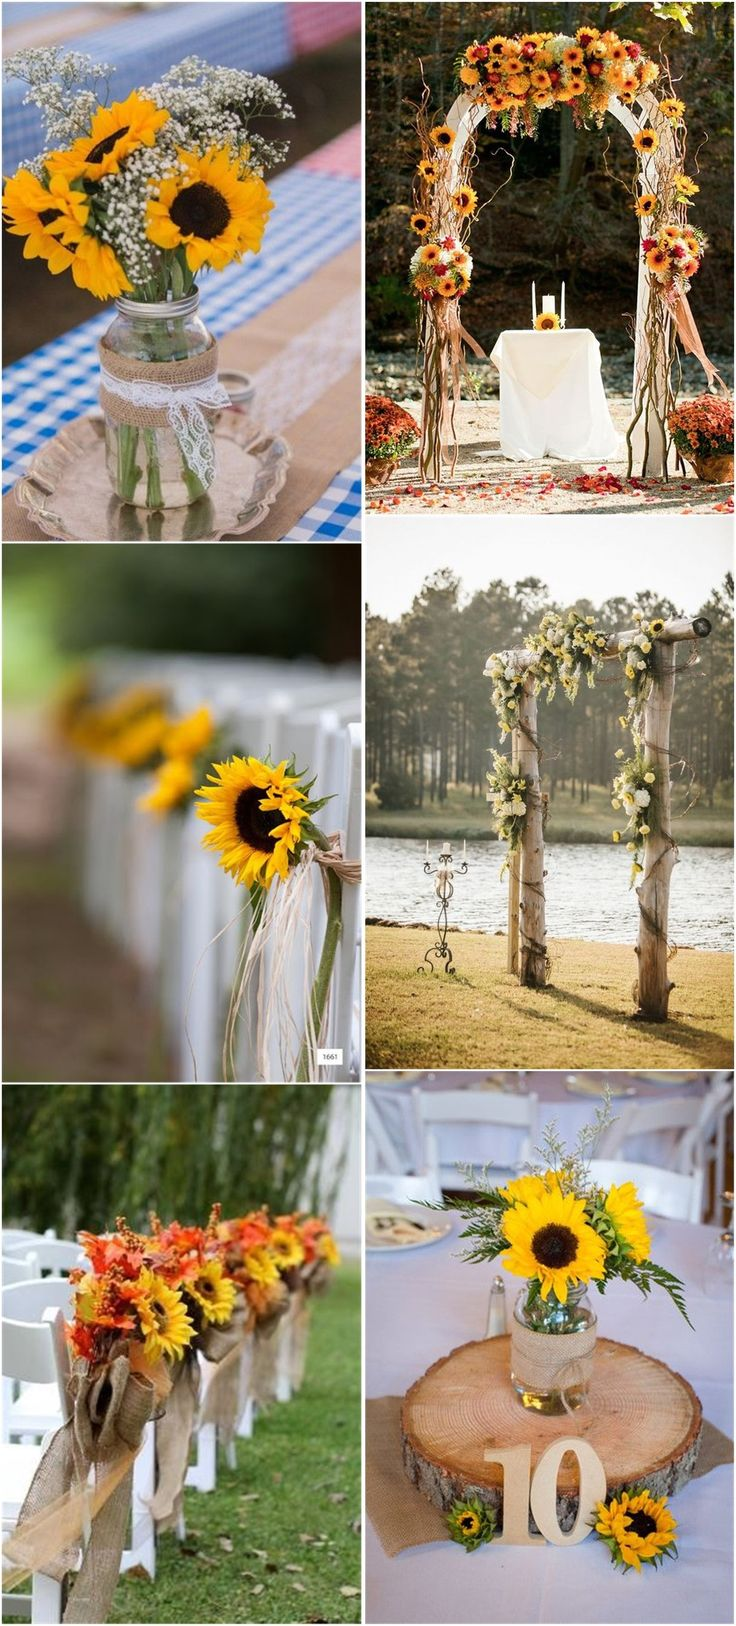 109 best images about Quince on Pinterest Quinceanera ideas Sunflower wedding cakes and